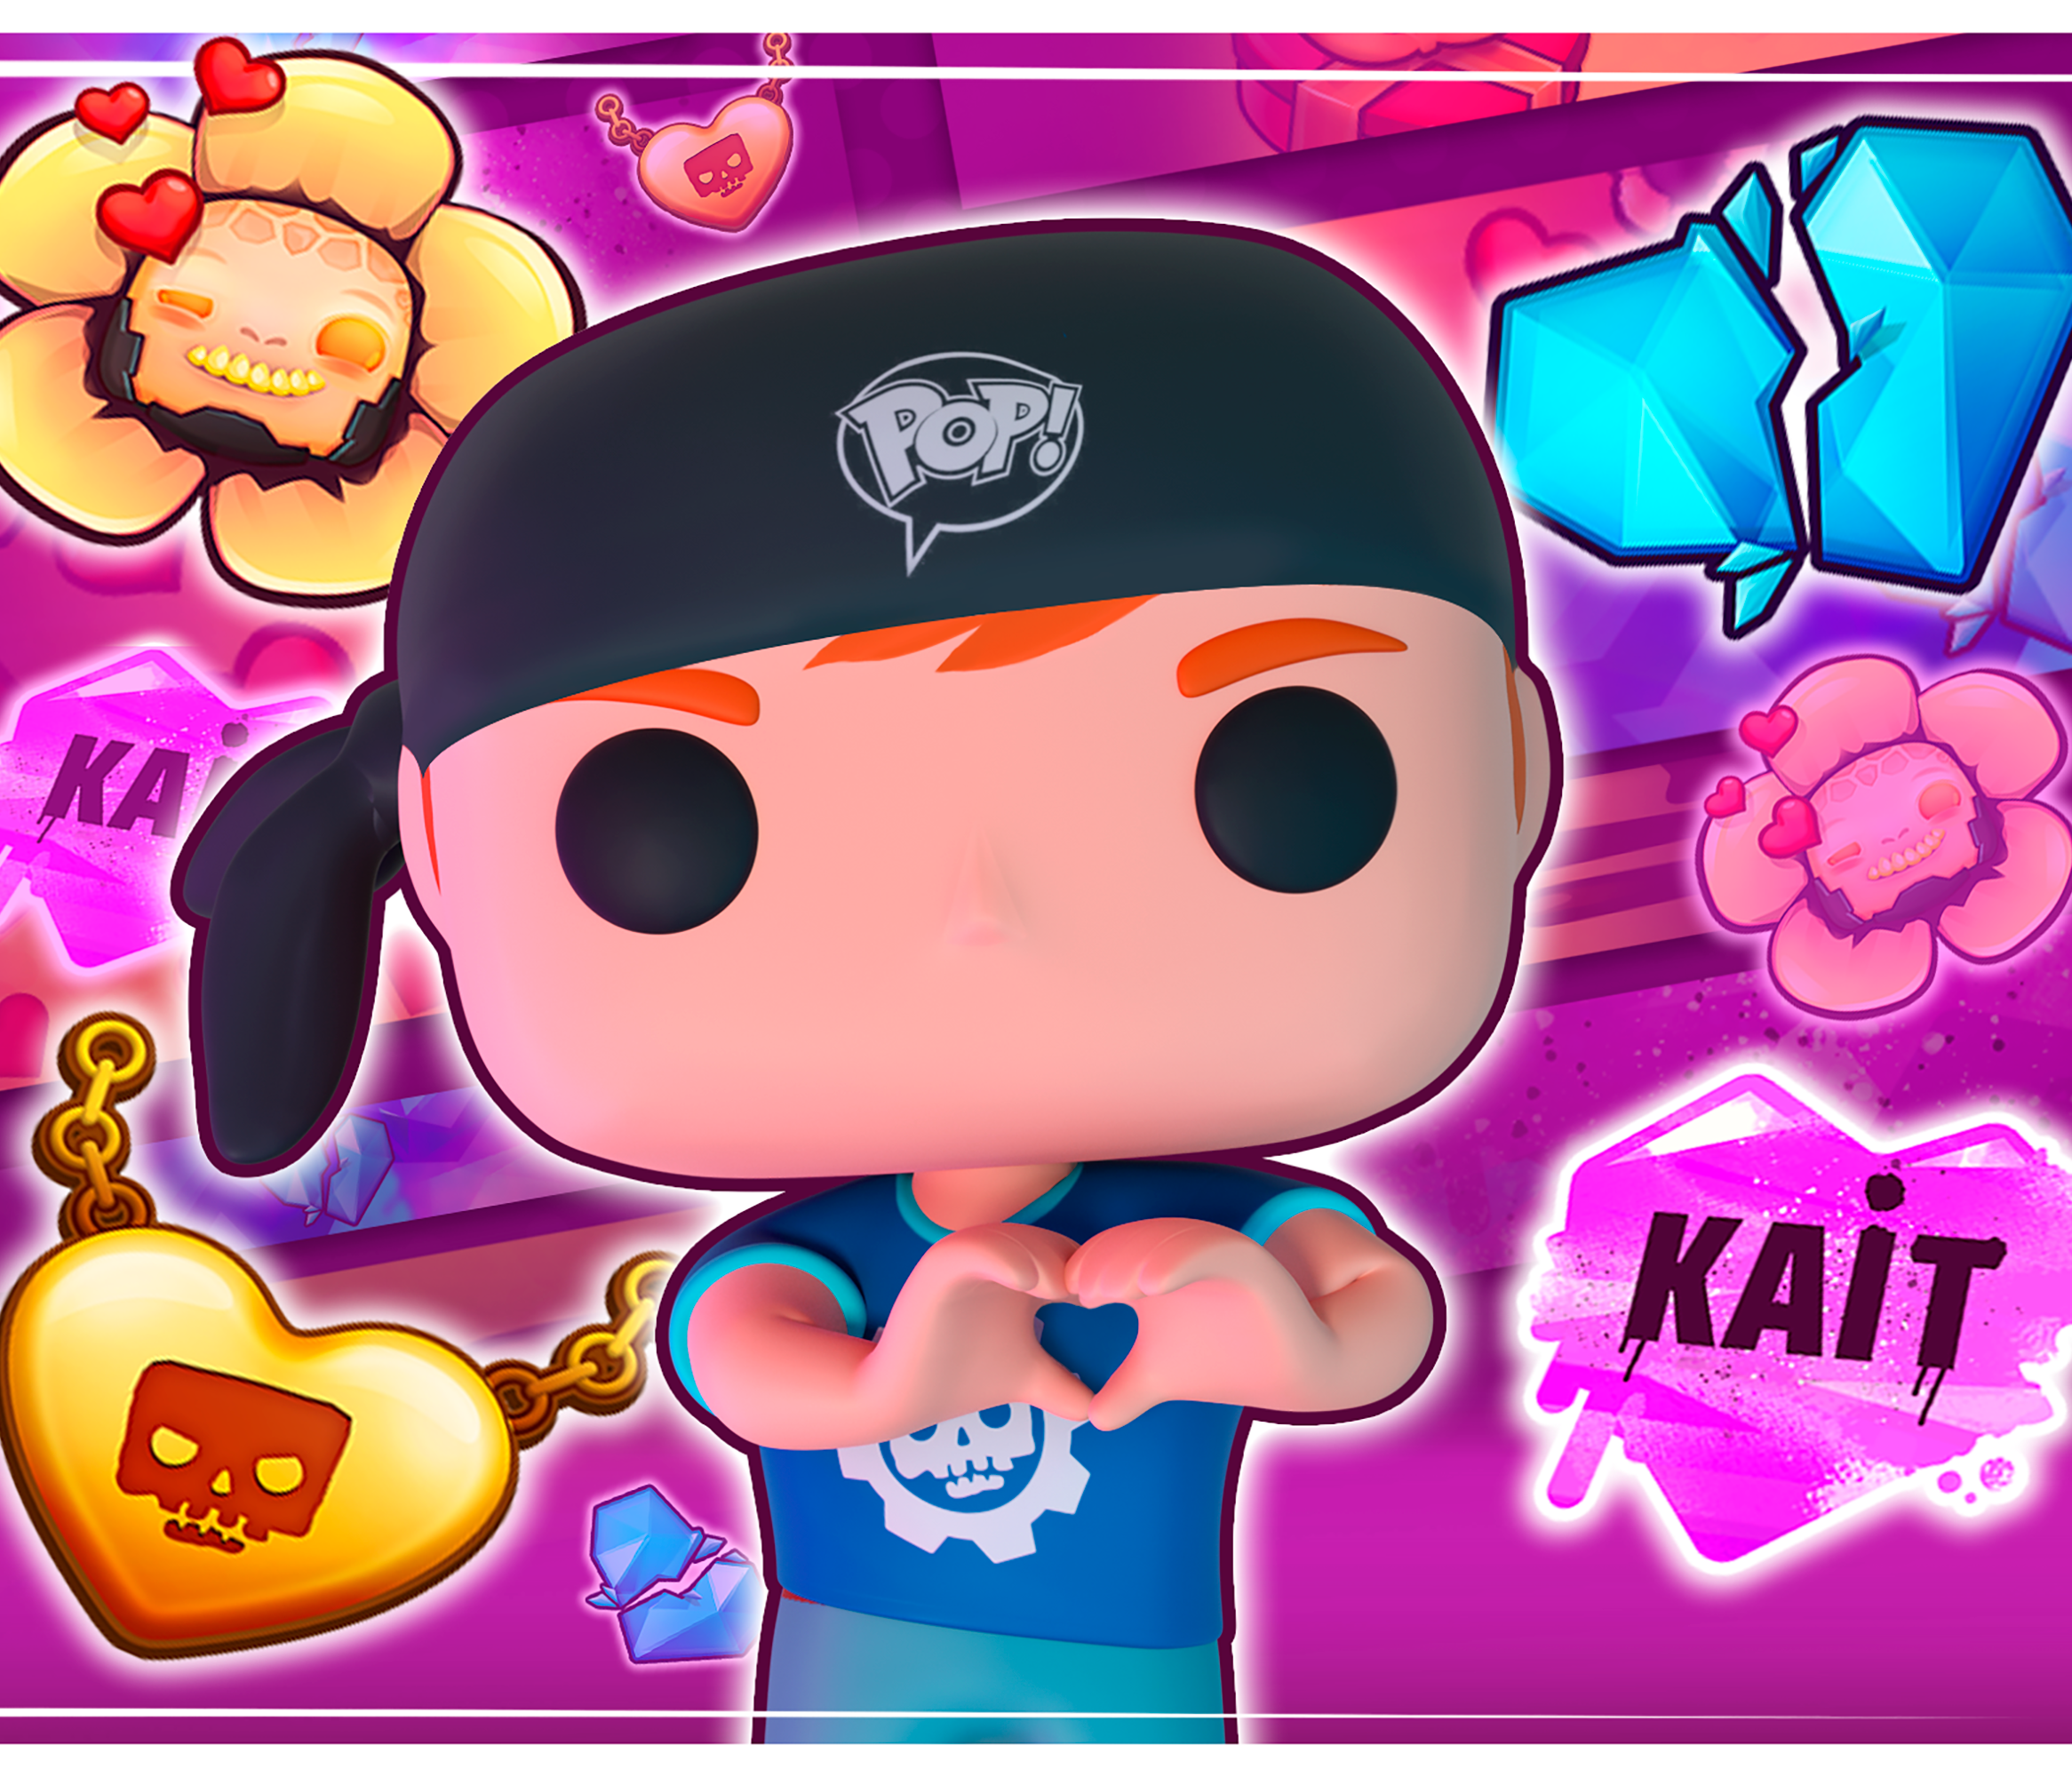 Gears POP! Valentine's Day promo image featuring logos and a Leader making a heart with their hands.